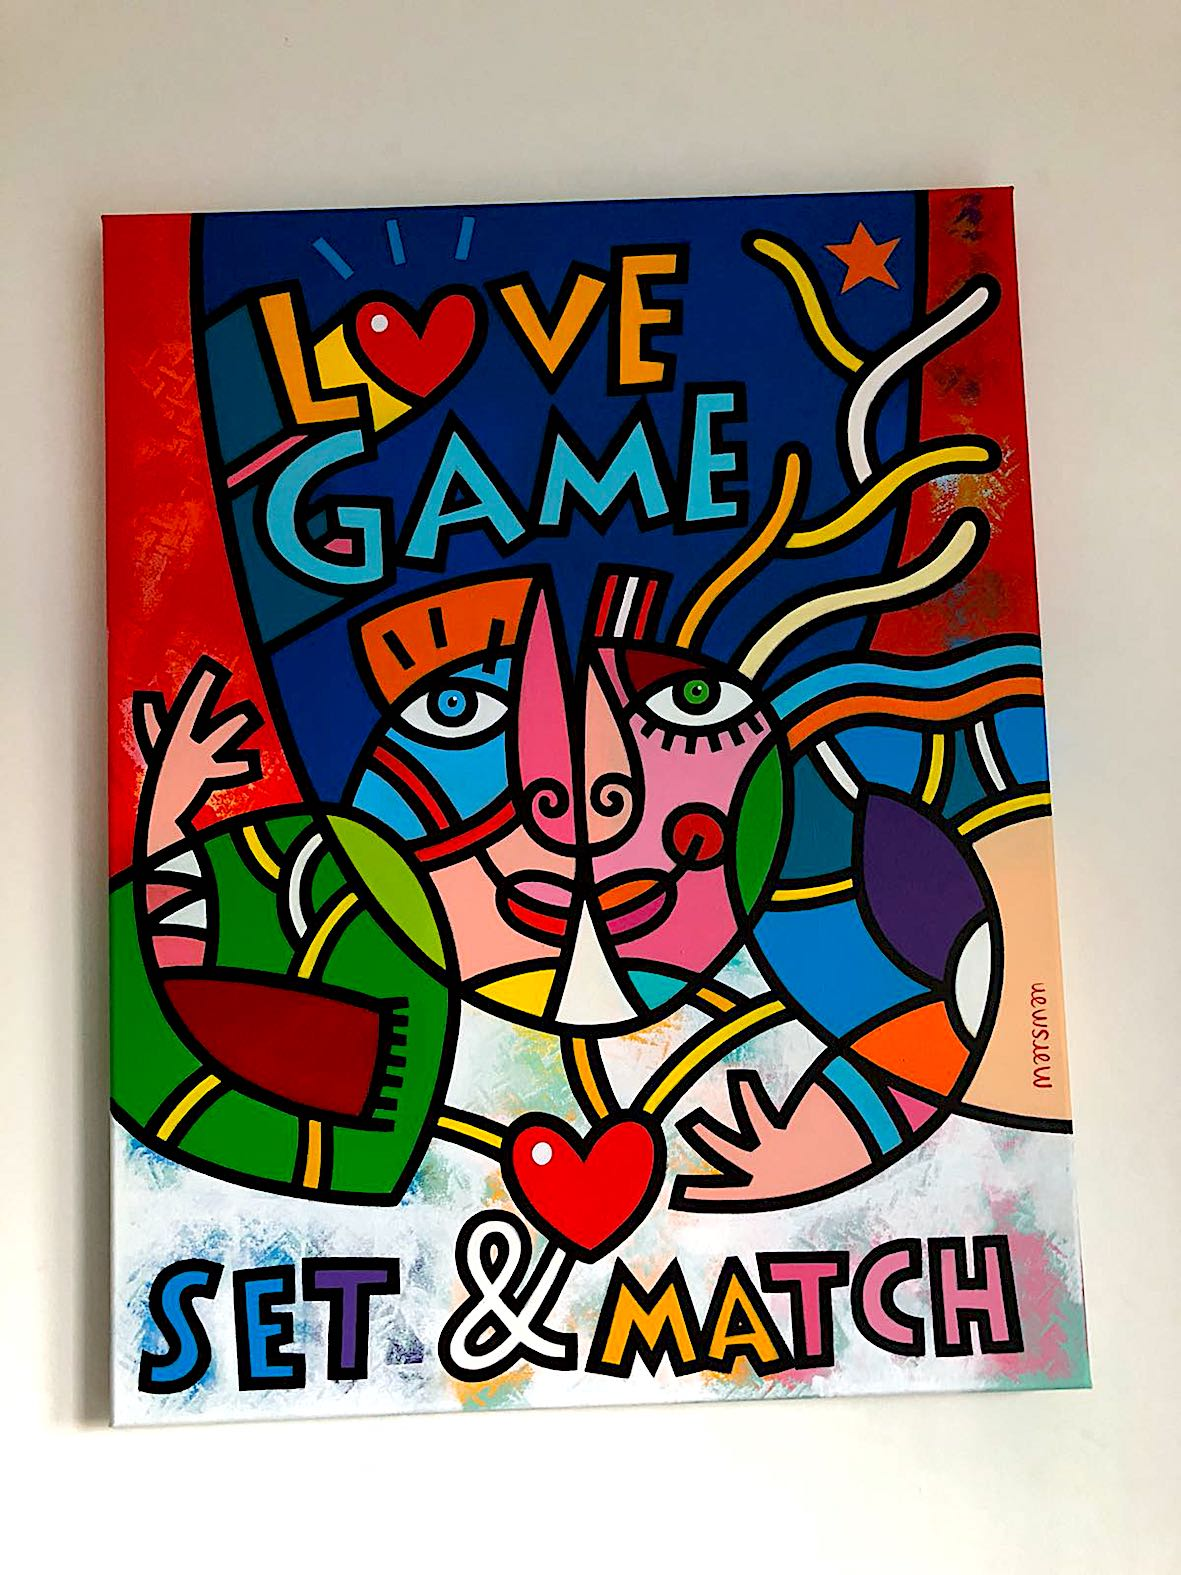 "<b>LOVEGAME</b> - 90 x 70 x 4 cm - Acrylic on canvas -   <a style=""color: red; text-decoration: none"" href=""mailto:jpgpmarsman@onsbrabantnet.nl"">BESTEL</a>"